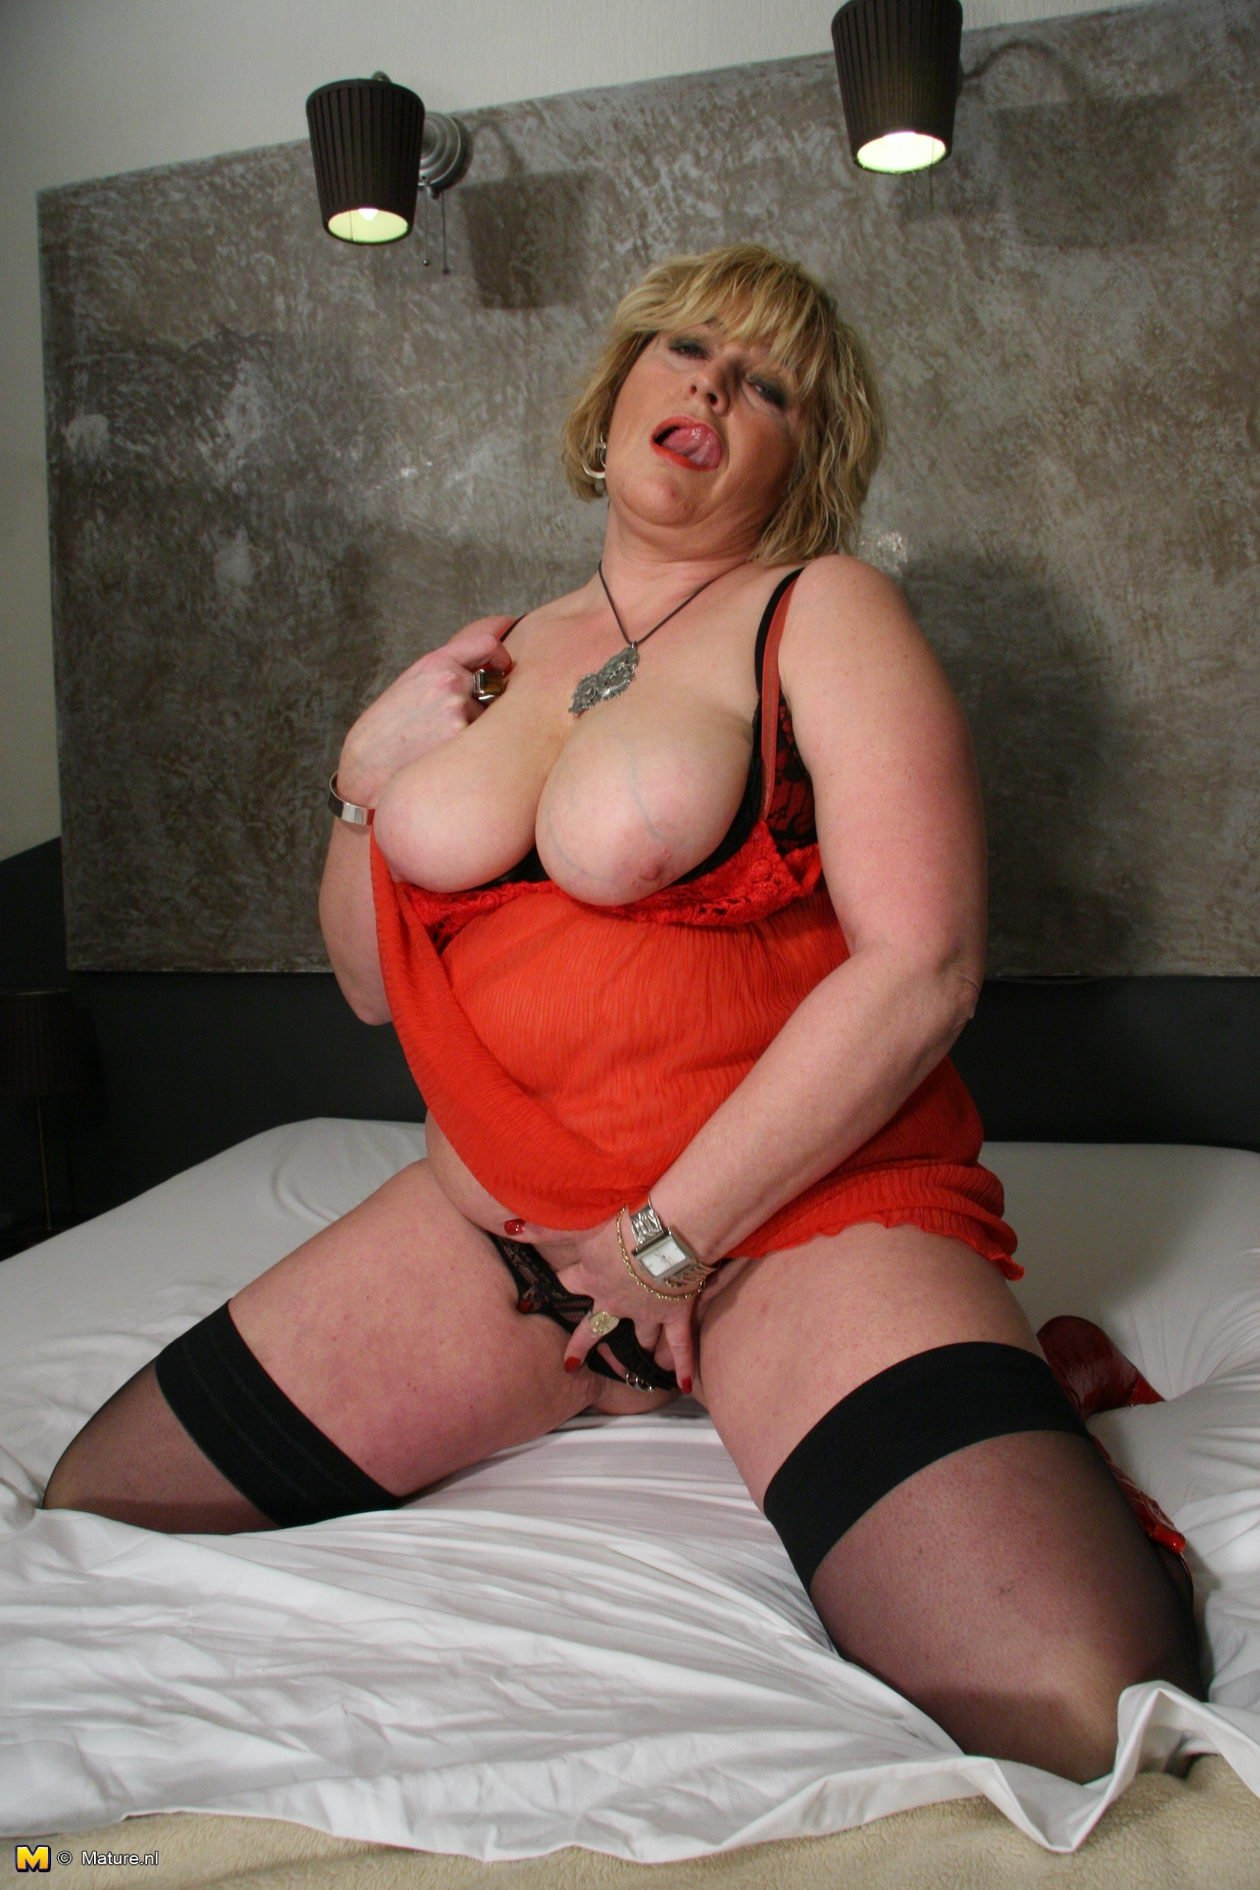 bbw bbc porn tube free photos of mature naked women